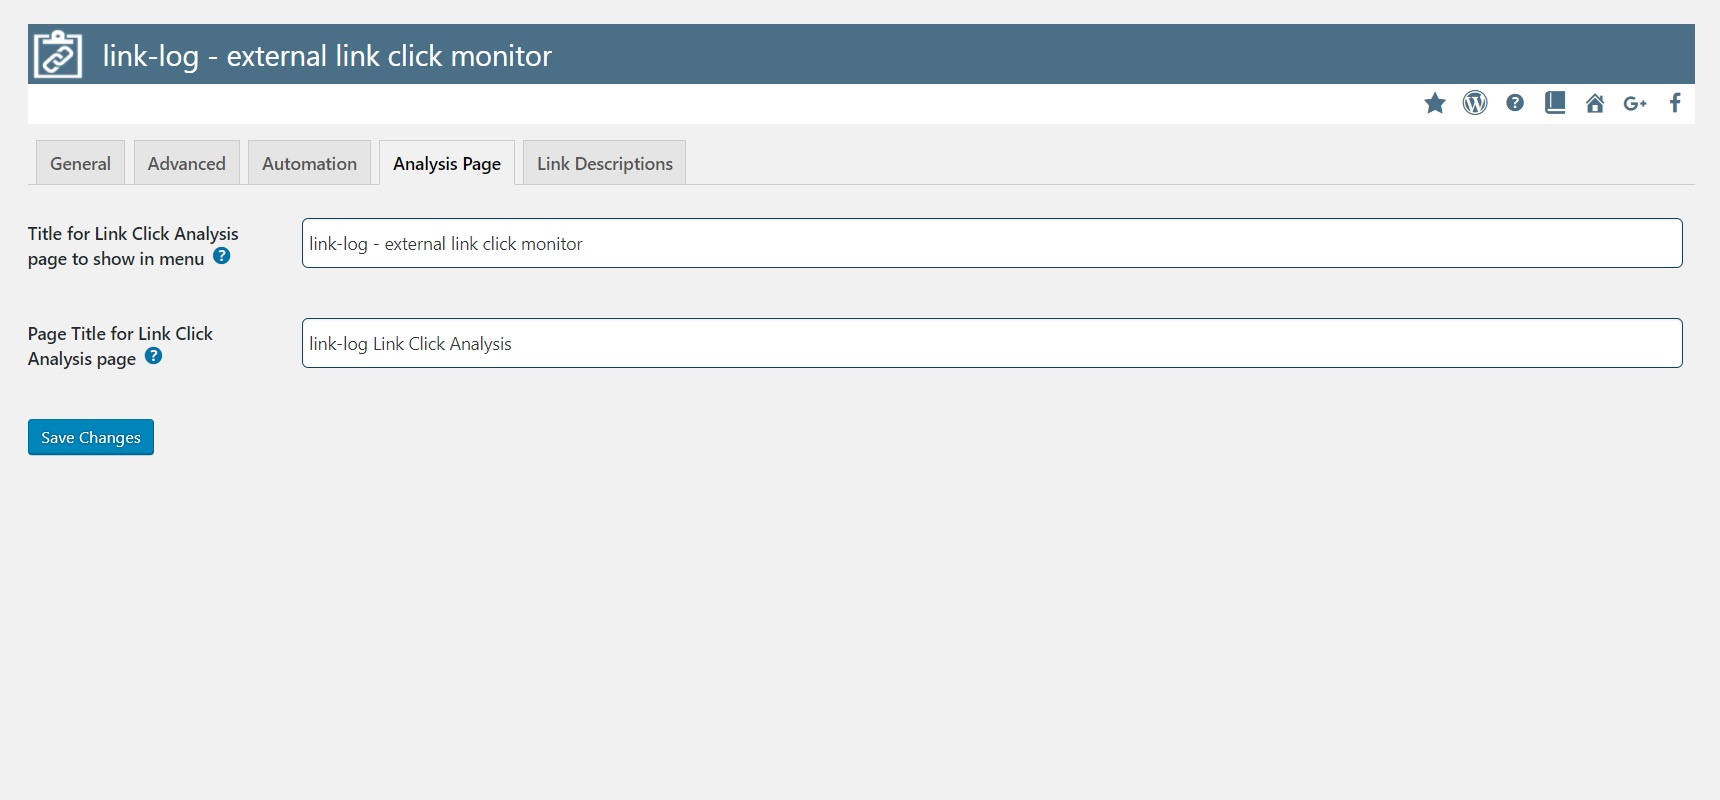 Free WordPress Plugin link-log by Peter's Plugins - Analysis Page Settings